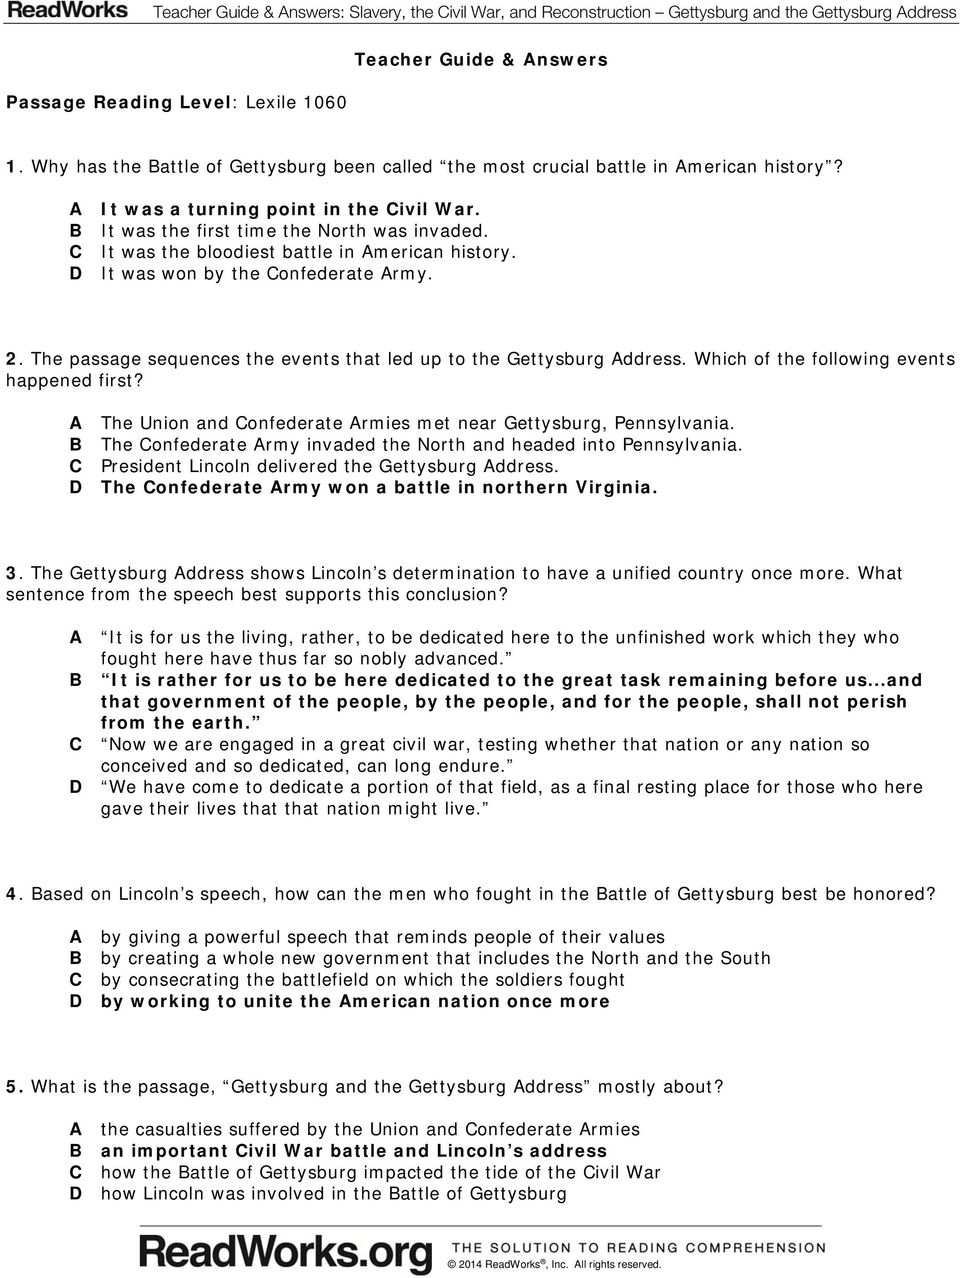 Worksheets Gettysburg Address Worksheet slavery the civil war and reconstruction gettysburg c it was bloodiest battle in american history d won by the